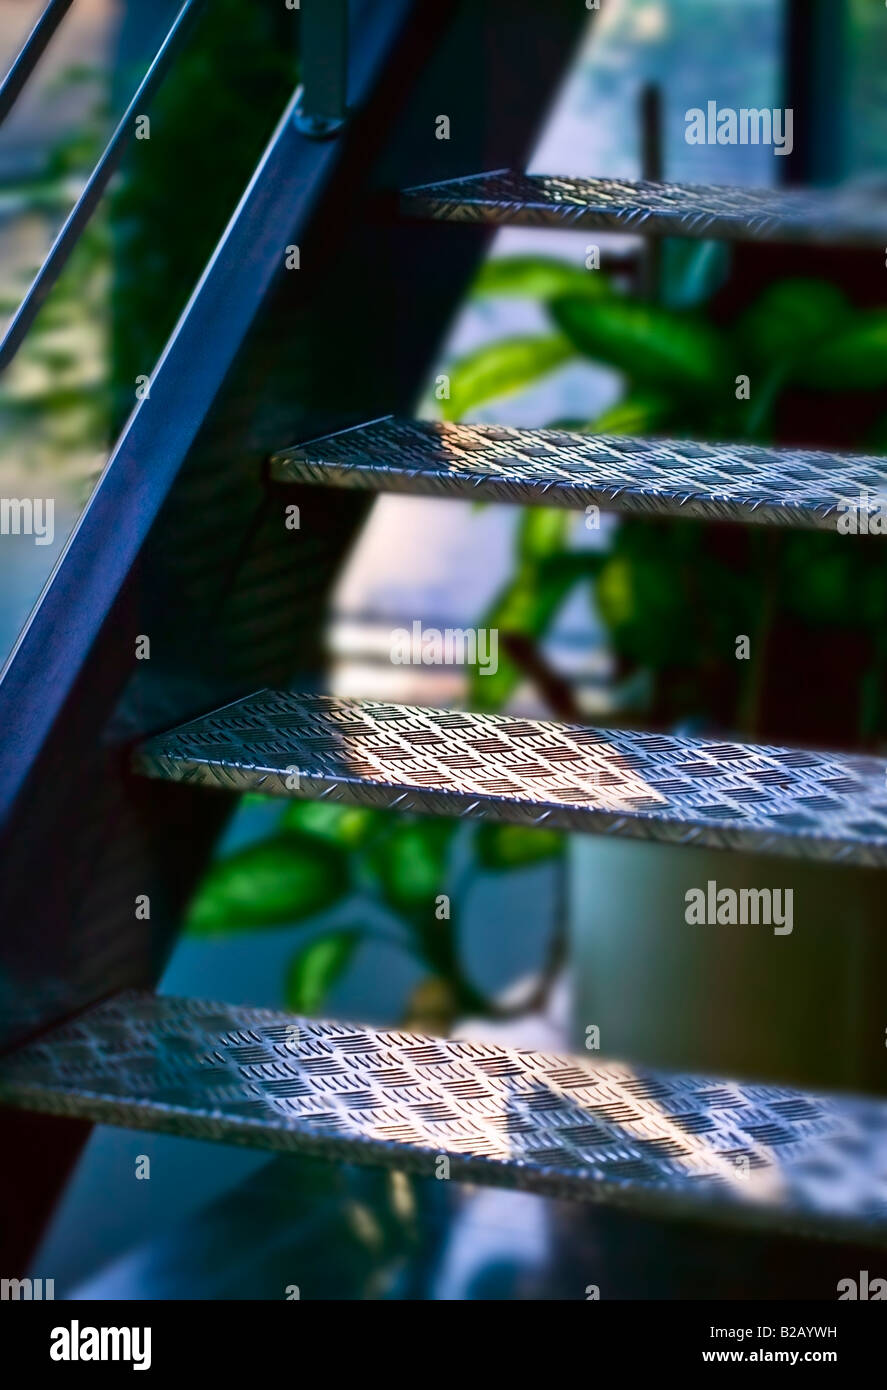 metal stairway [low angle view] - Stock Image